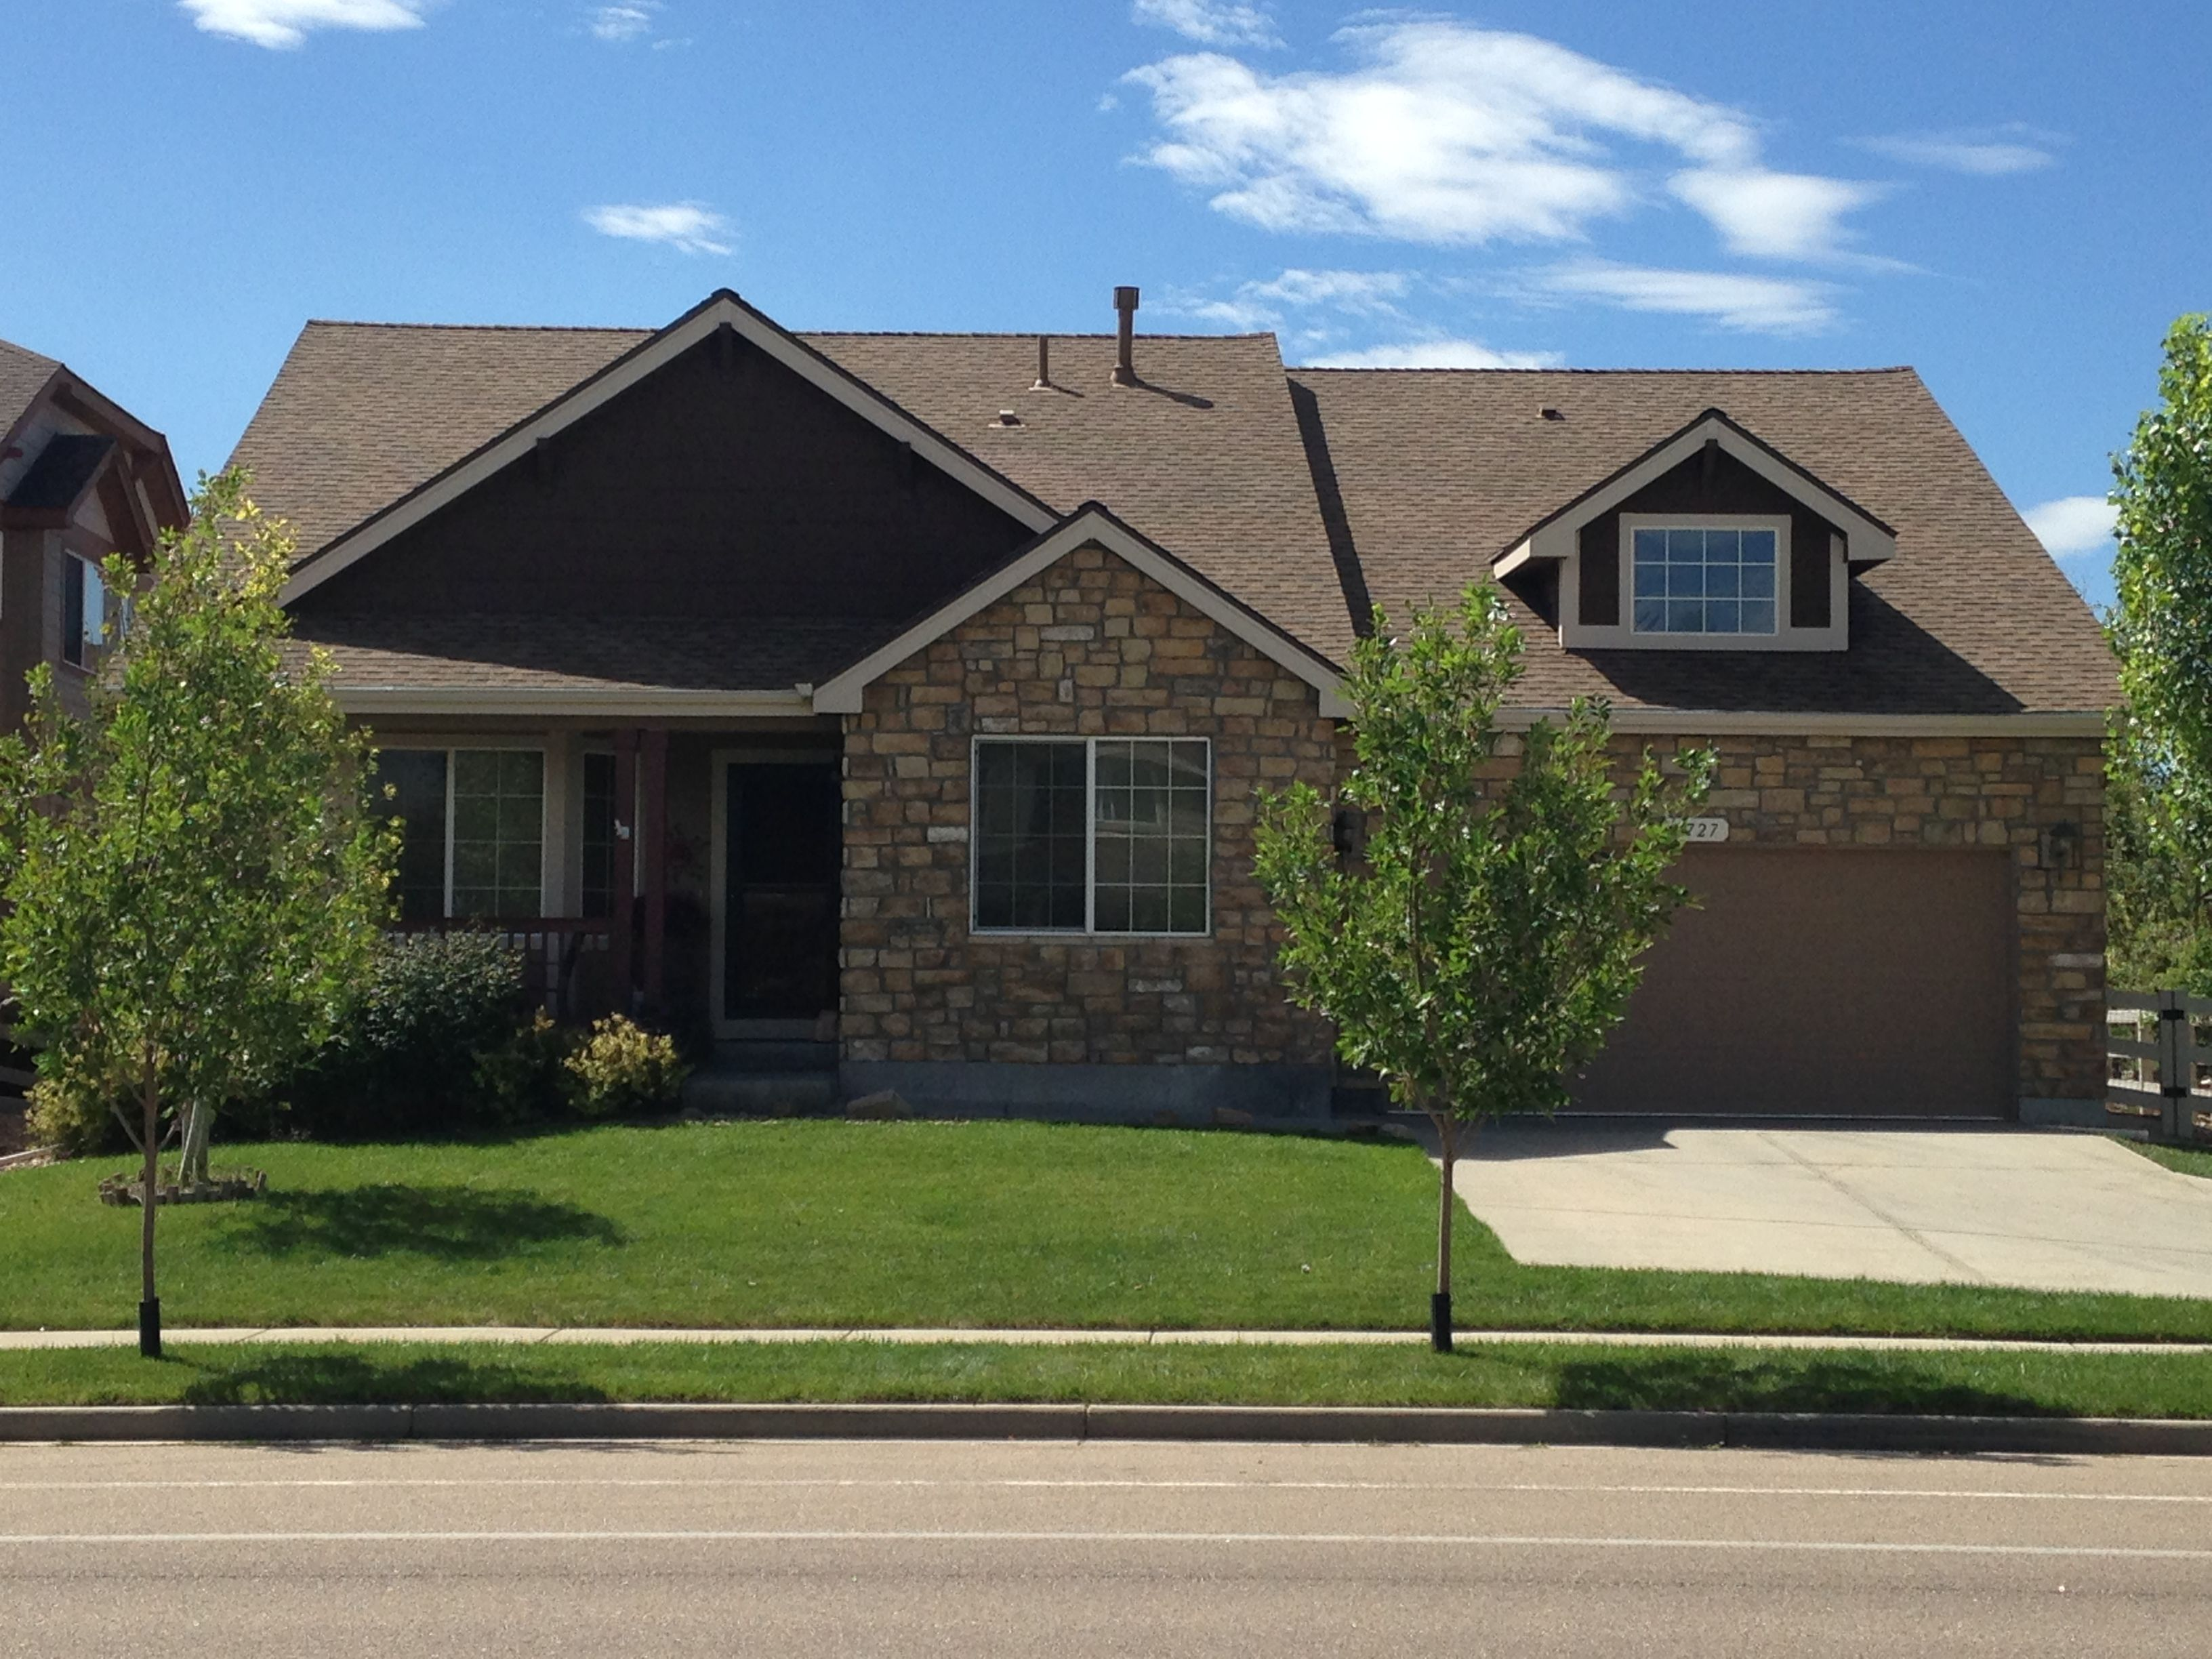 This House In Fort Collins Was Hit Badly With Hail We Installed A New Roof On It The Color Of The Shingles Is Barkwood Fro With Images Roofing Contractors Roof Roofing